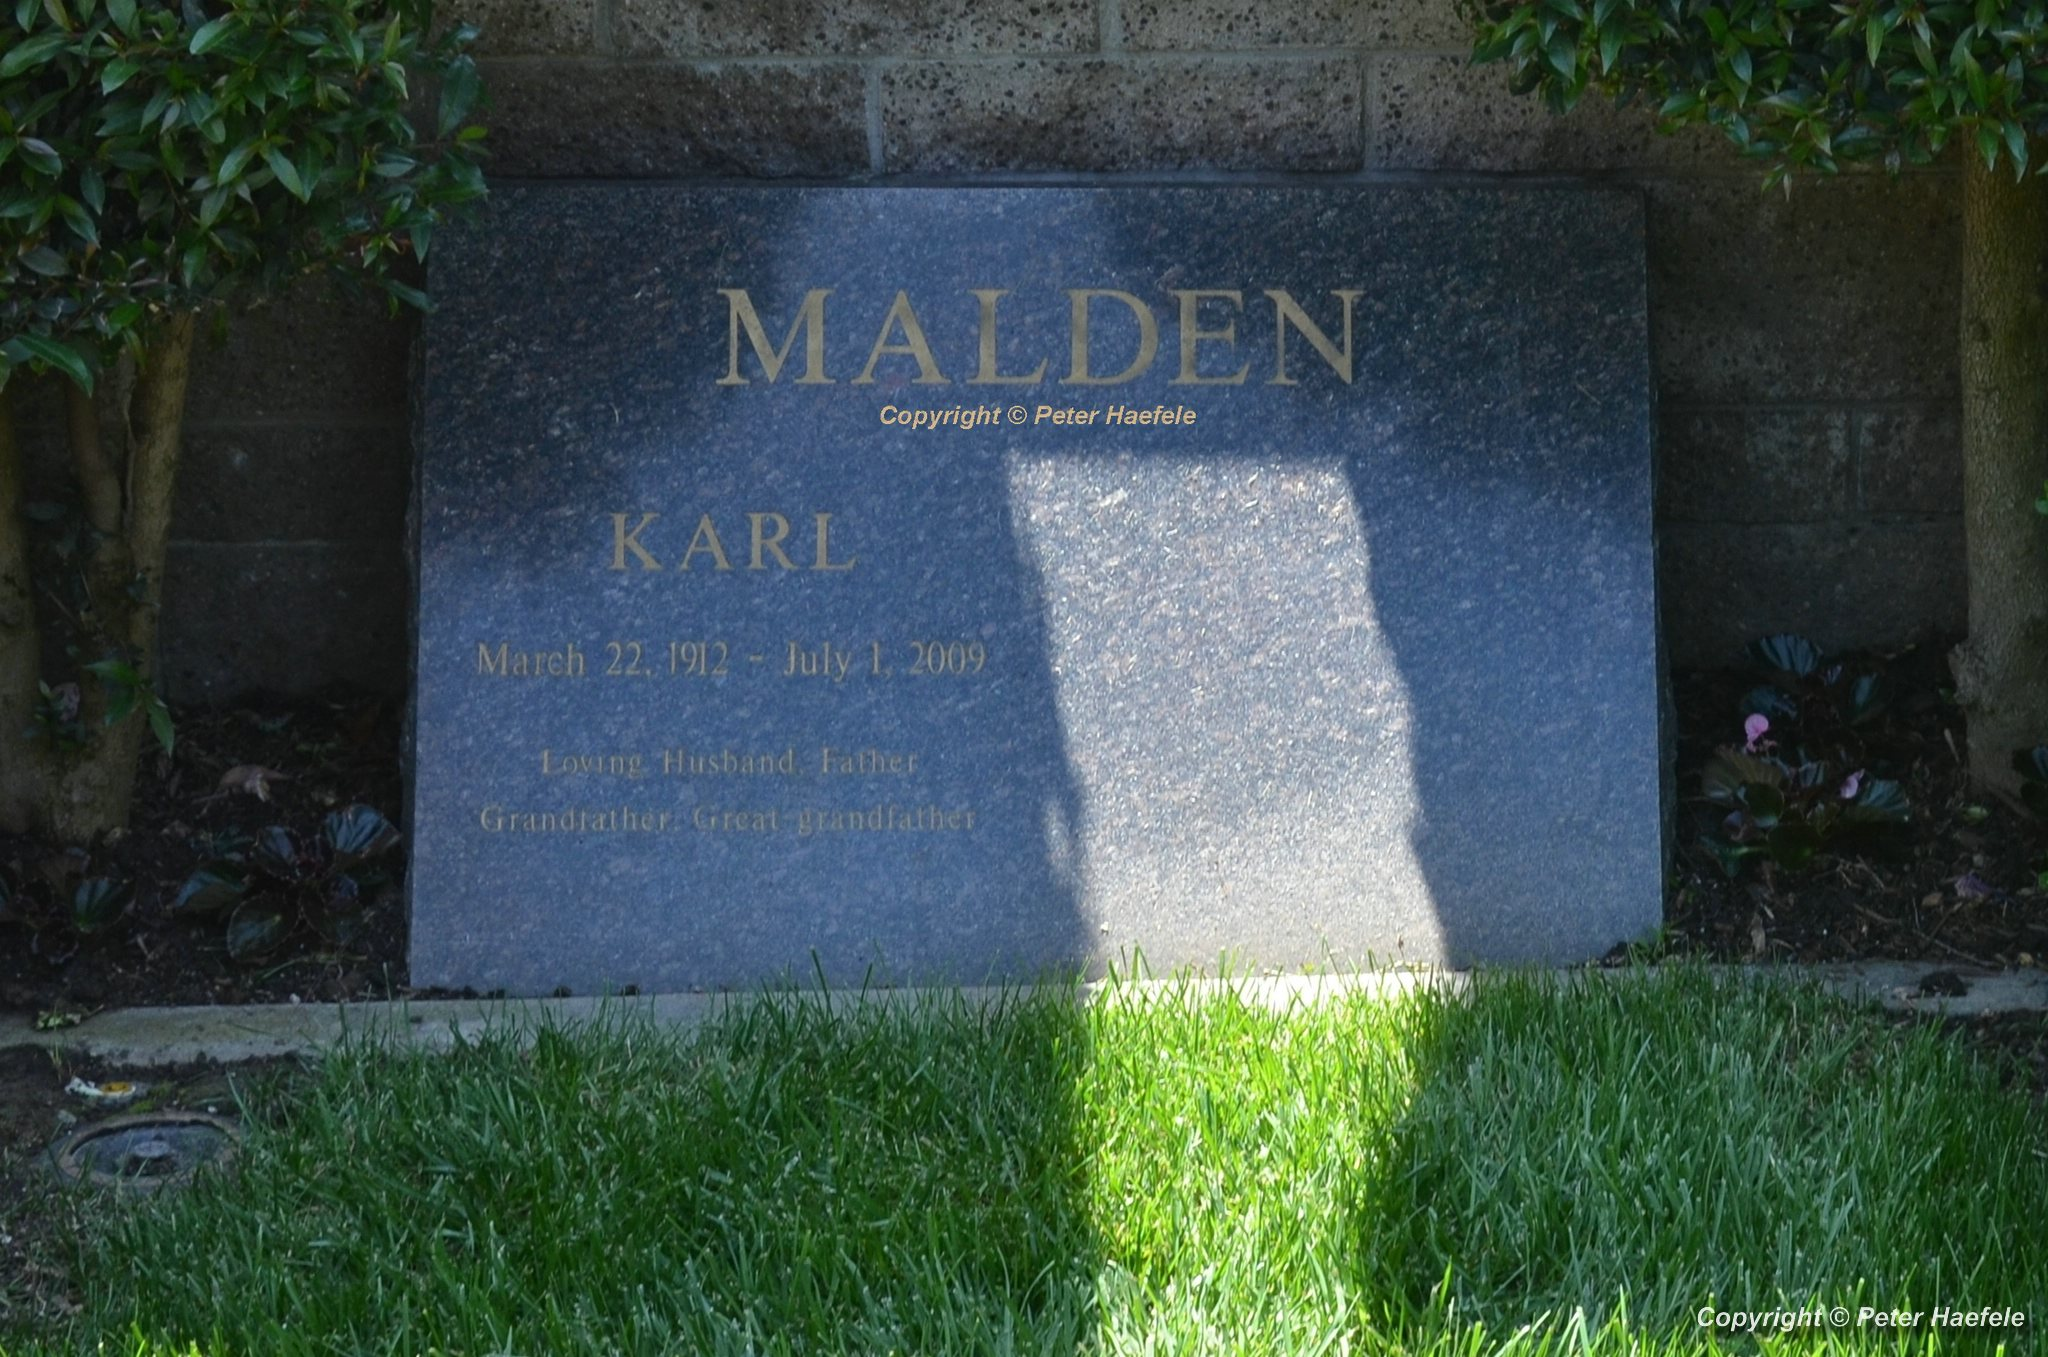 Roadtrip USA - Westwood Village Memorial Park Cemetery - Grave of Karl Malden